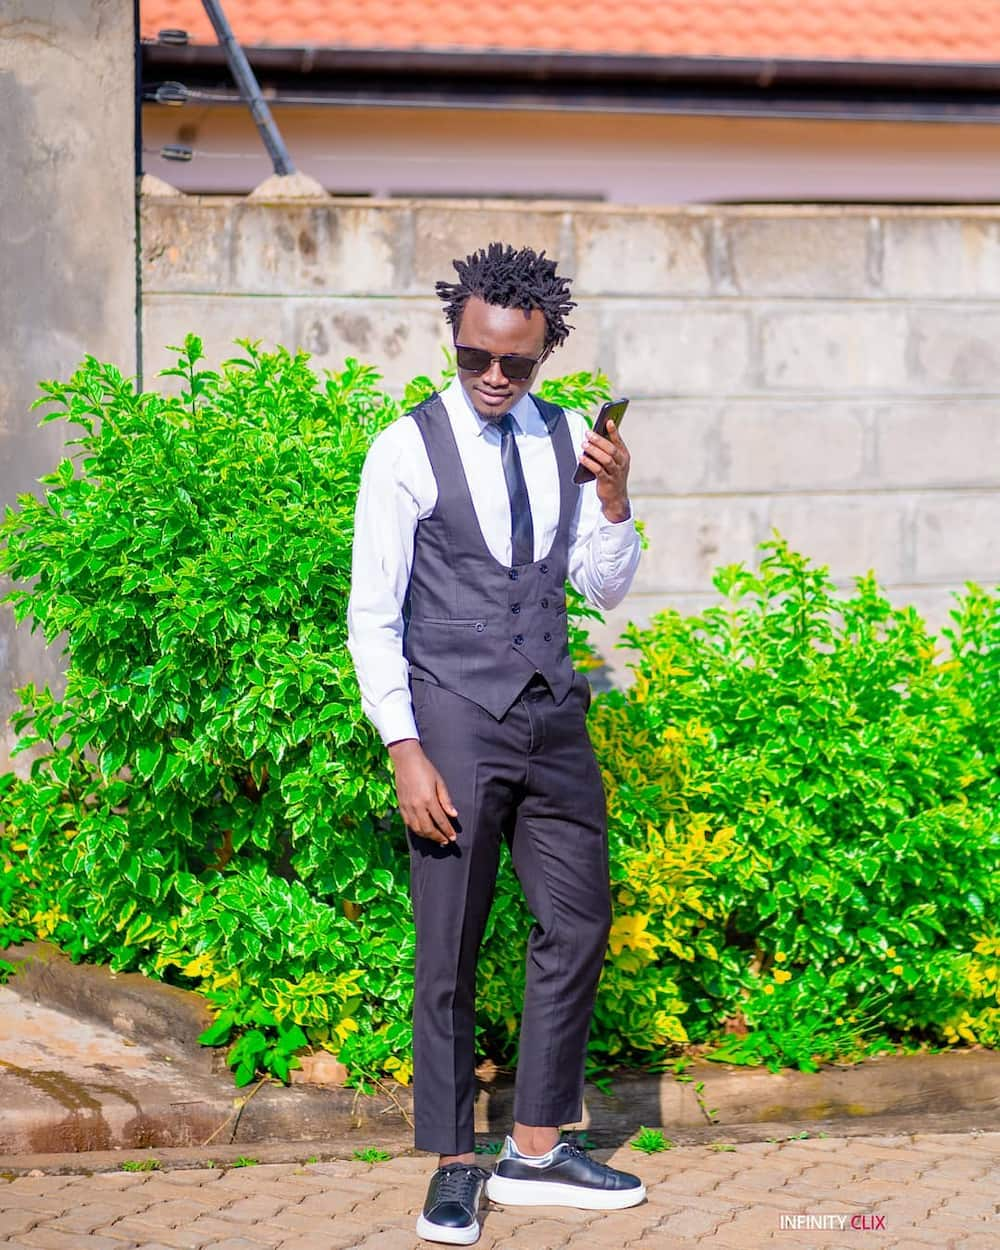 Repent! City pastor Godfrey Migwi says entertainers using clergy clothings in secular songs risk curses